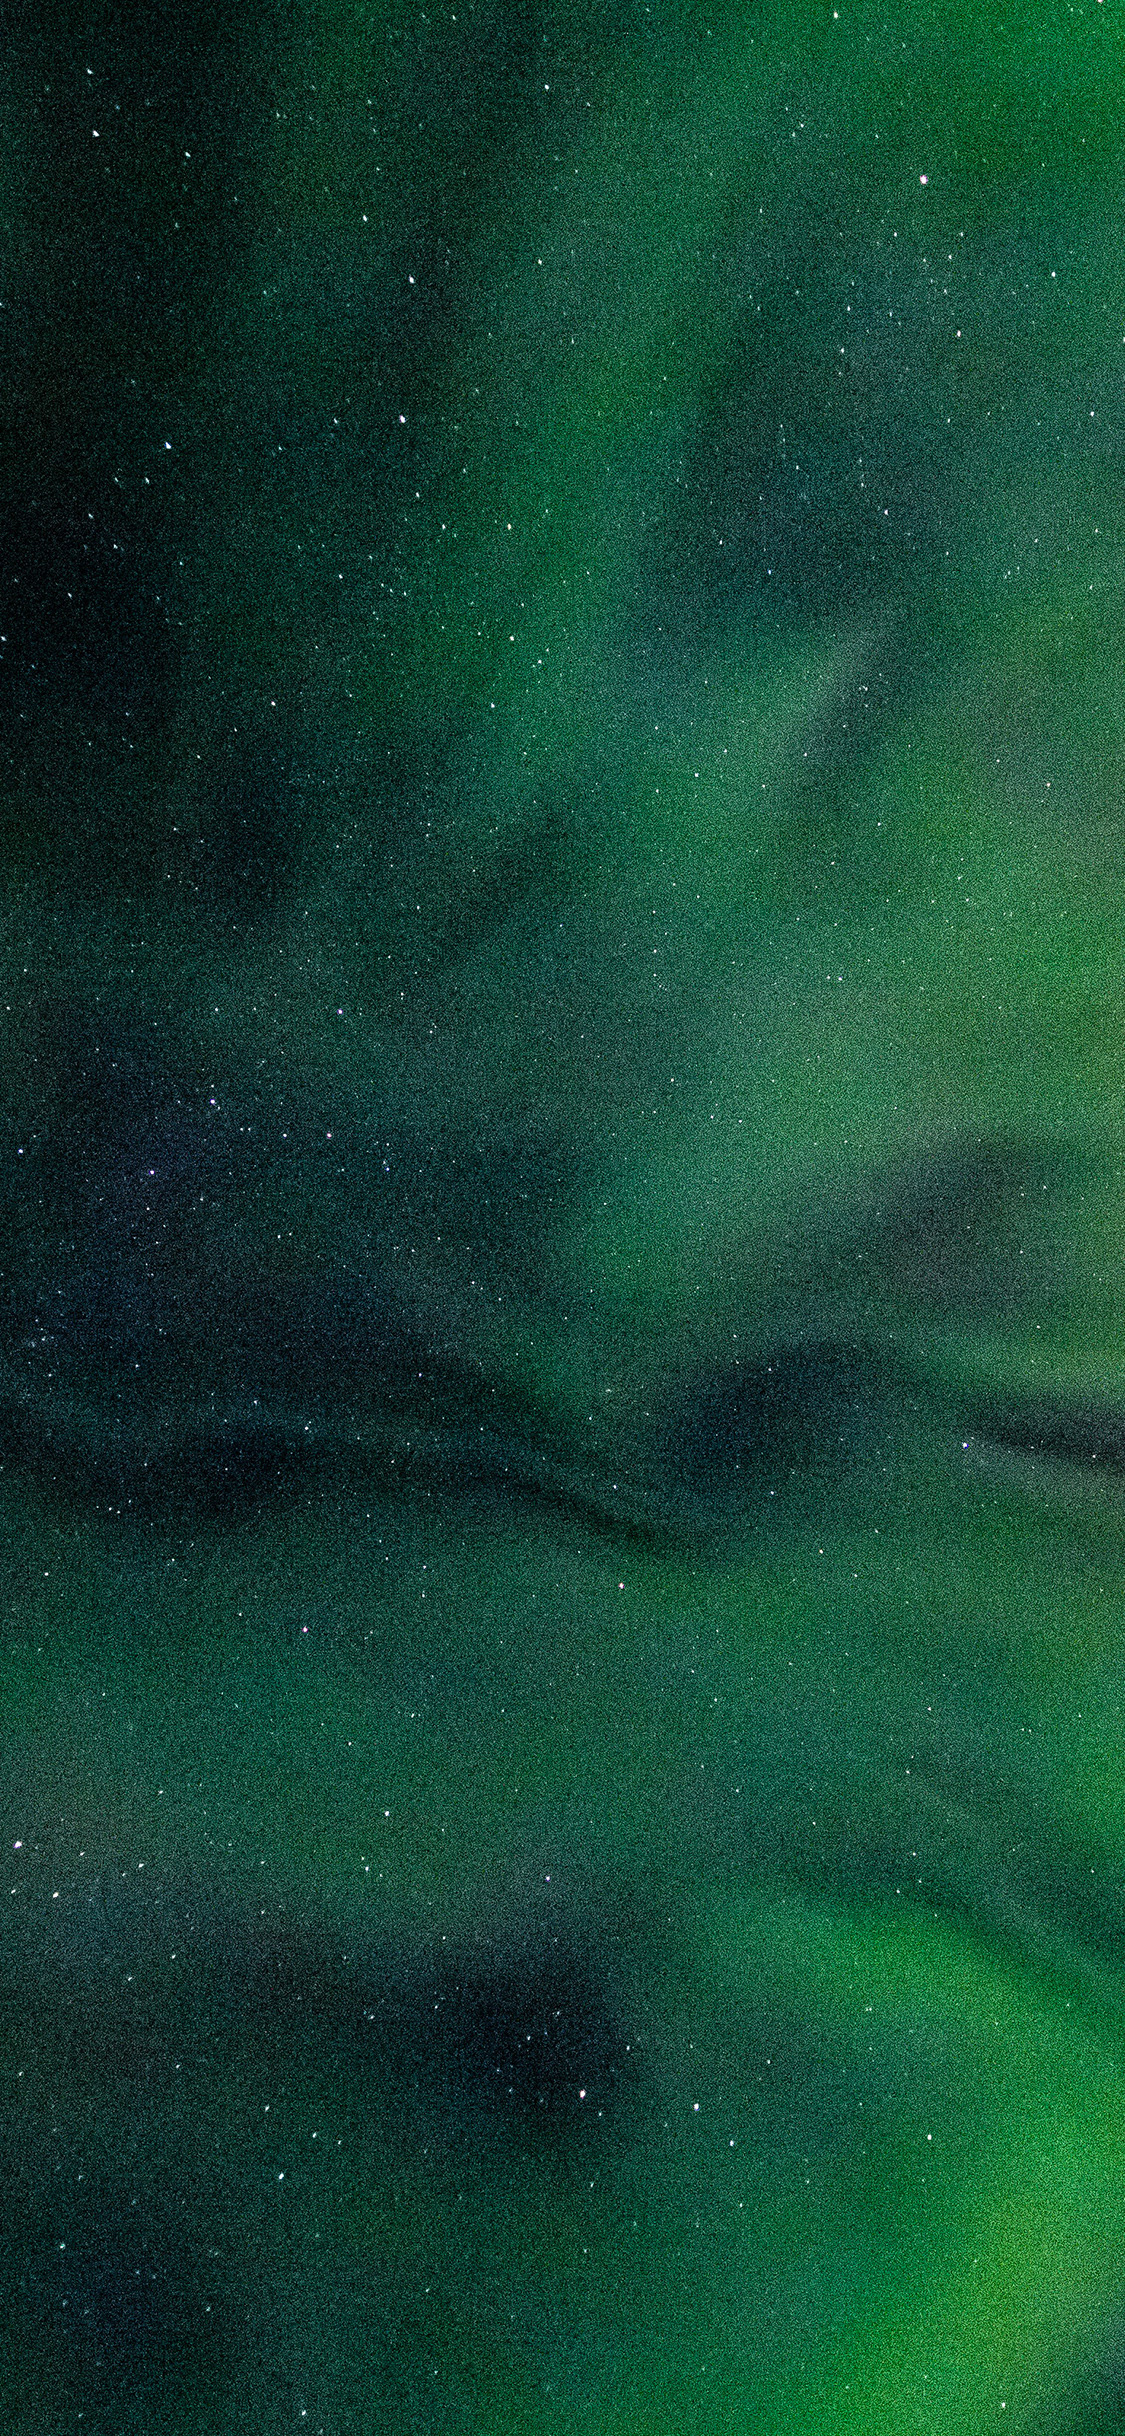 iPhone wallpaper aurora 1 Les 3Wallpapers iPhone du jour (19/03/2017)